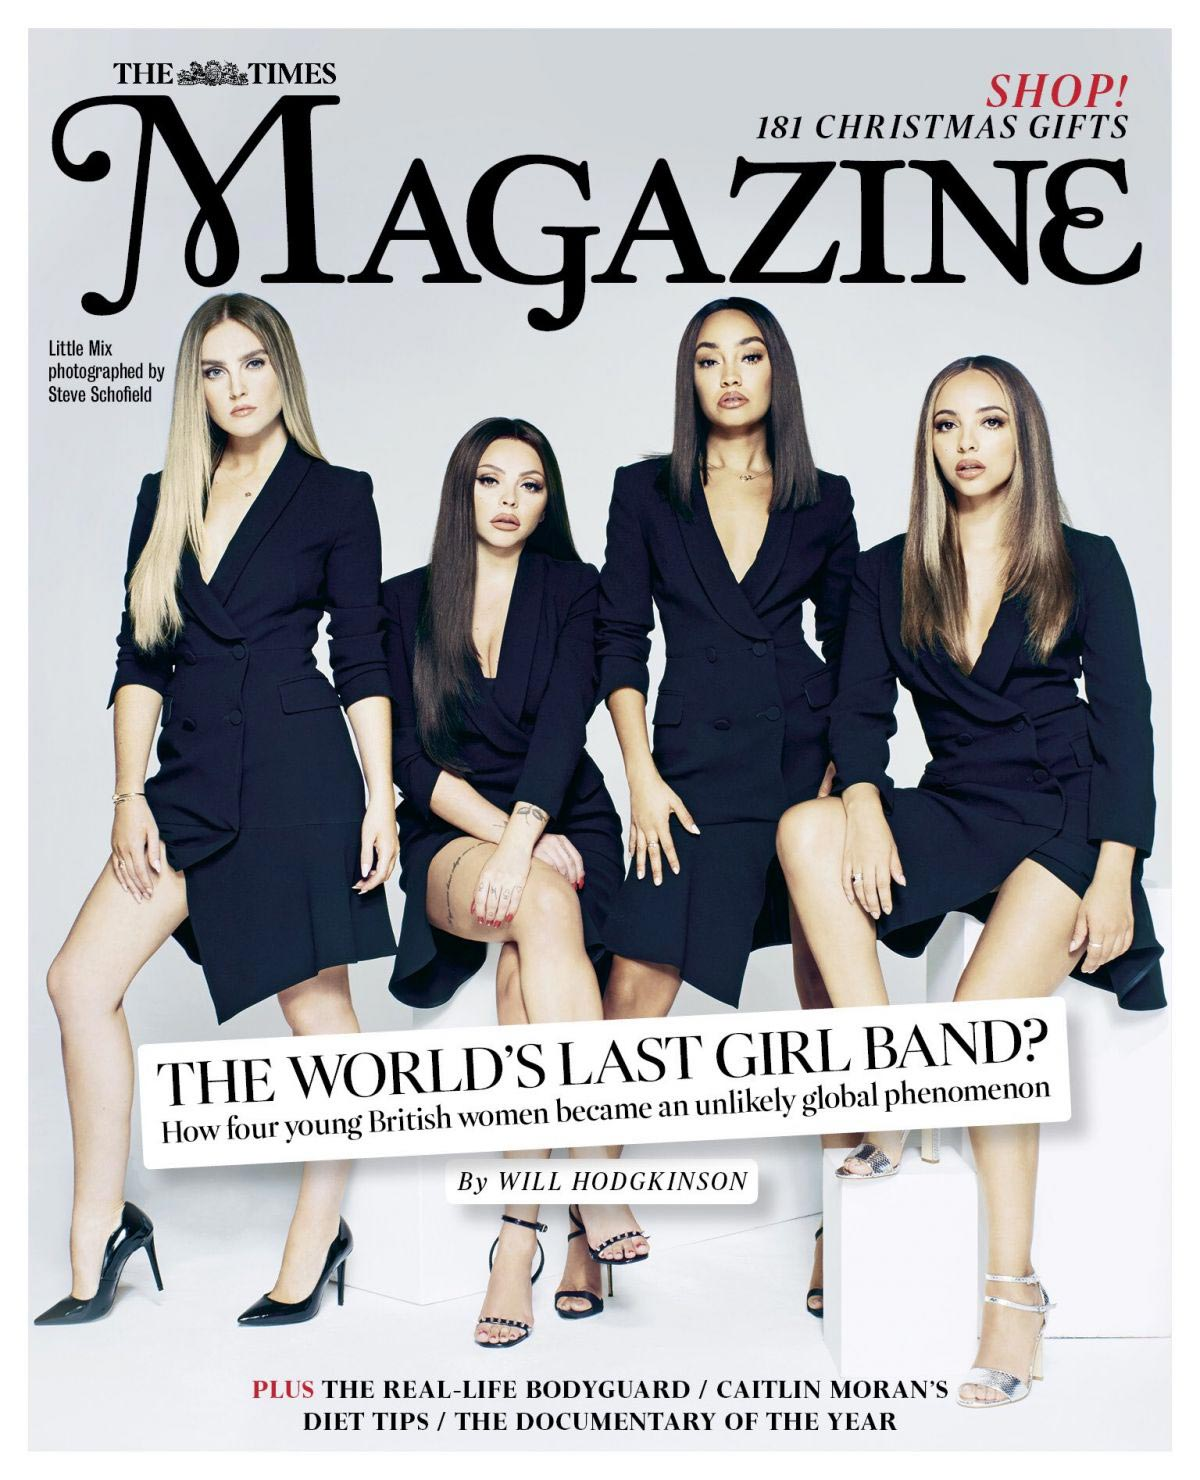 Little Mix on the Cover of Times Magazine 2018 1